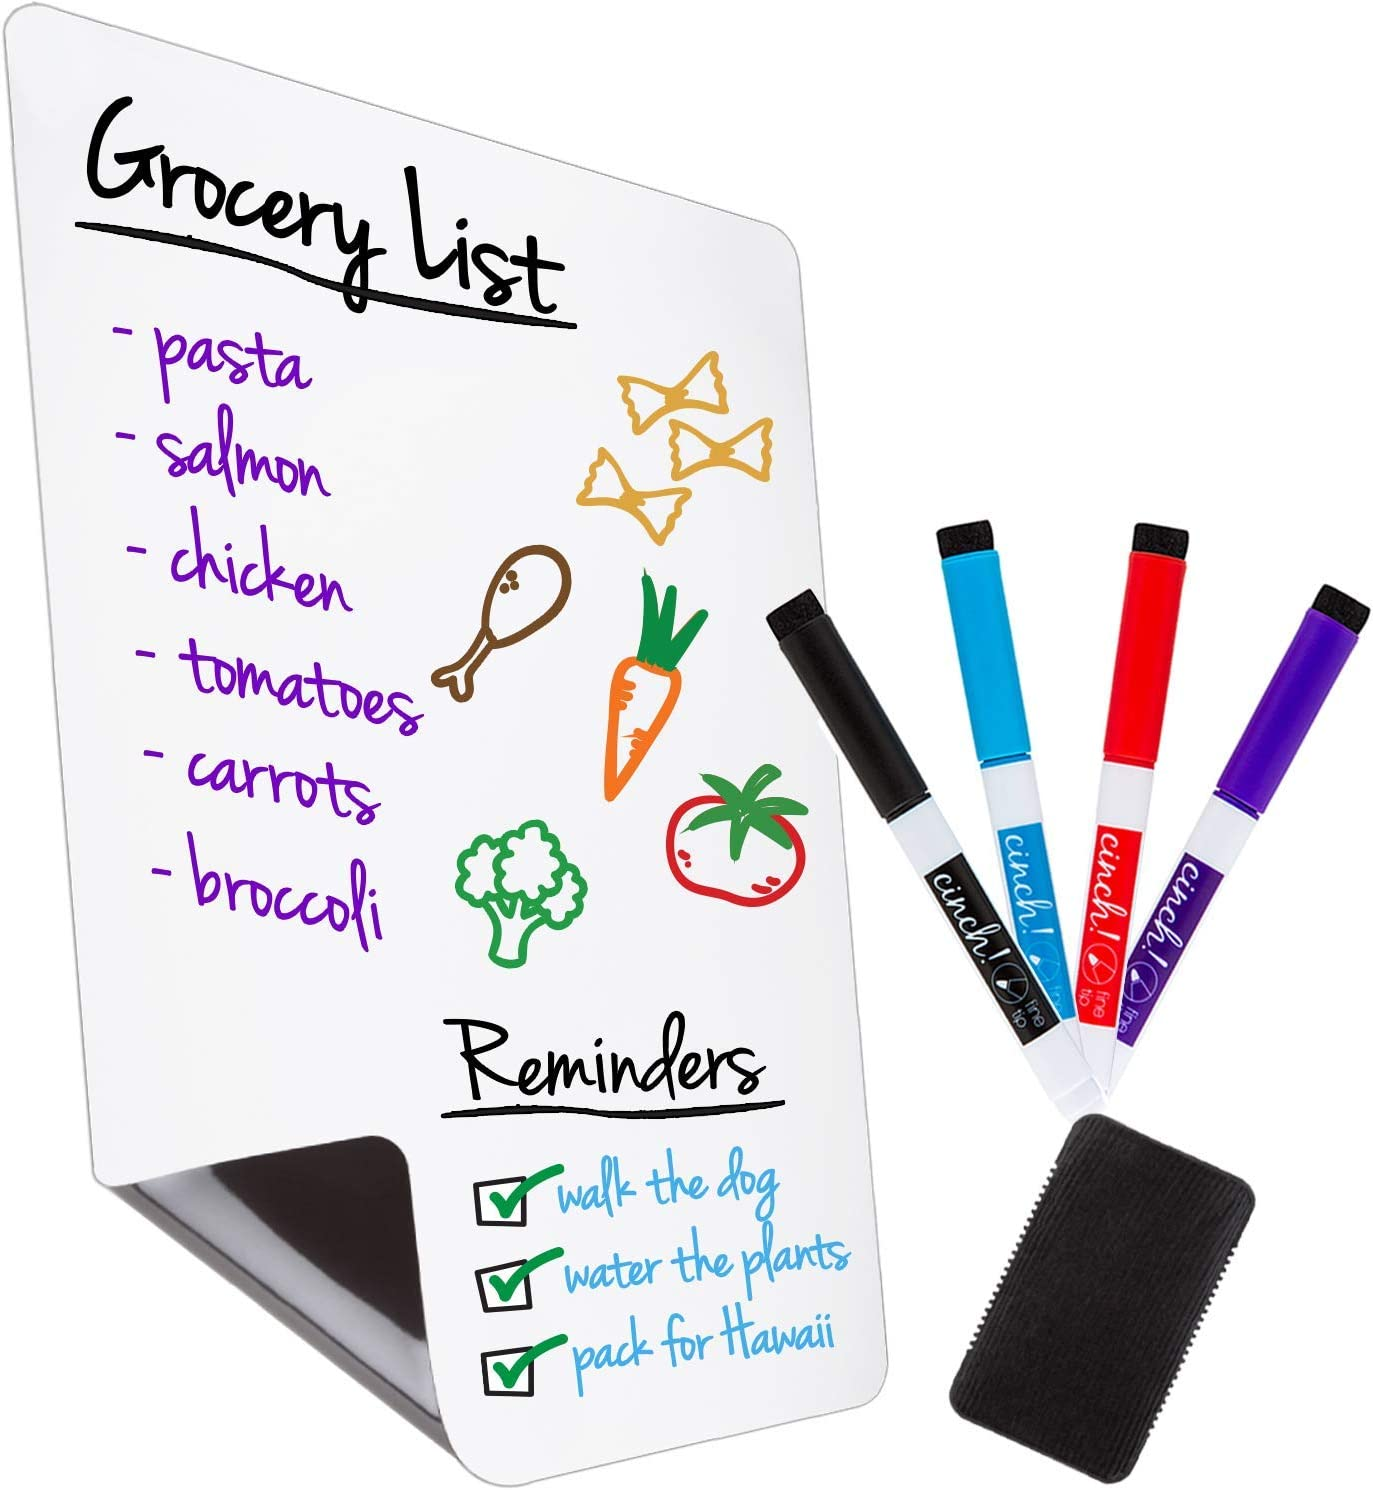 """Magnetic Dry Erase Whiteboard Sheet for Kitchen Fridge: with Stain Resistant Technology - 16x11"""" - Includes 4 Markers and Big Eraser with Magnets - Refrigerator Grocery List White Board Organizer"""